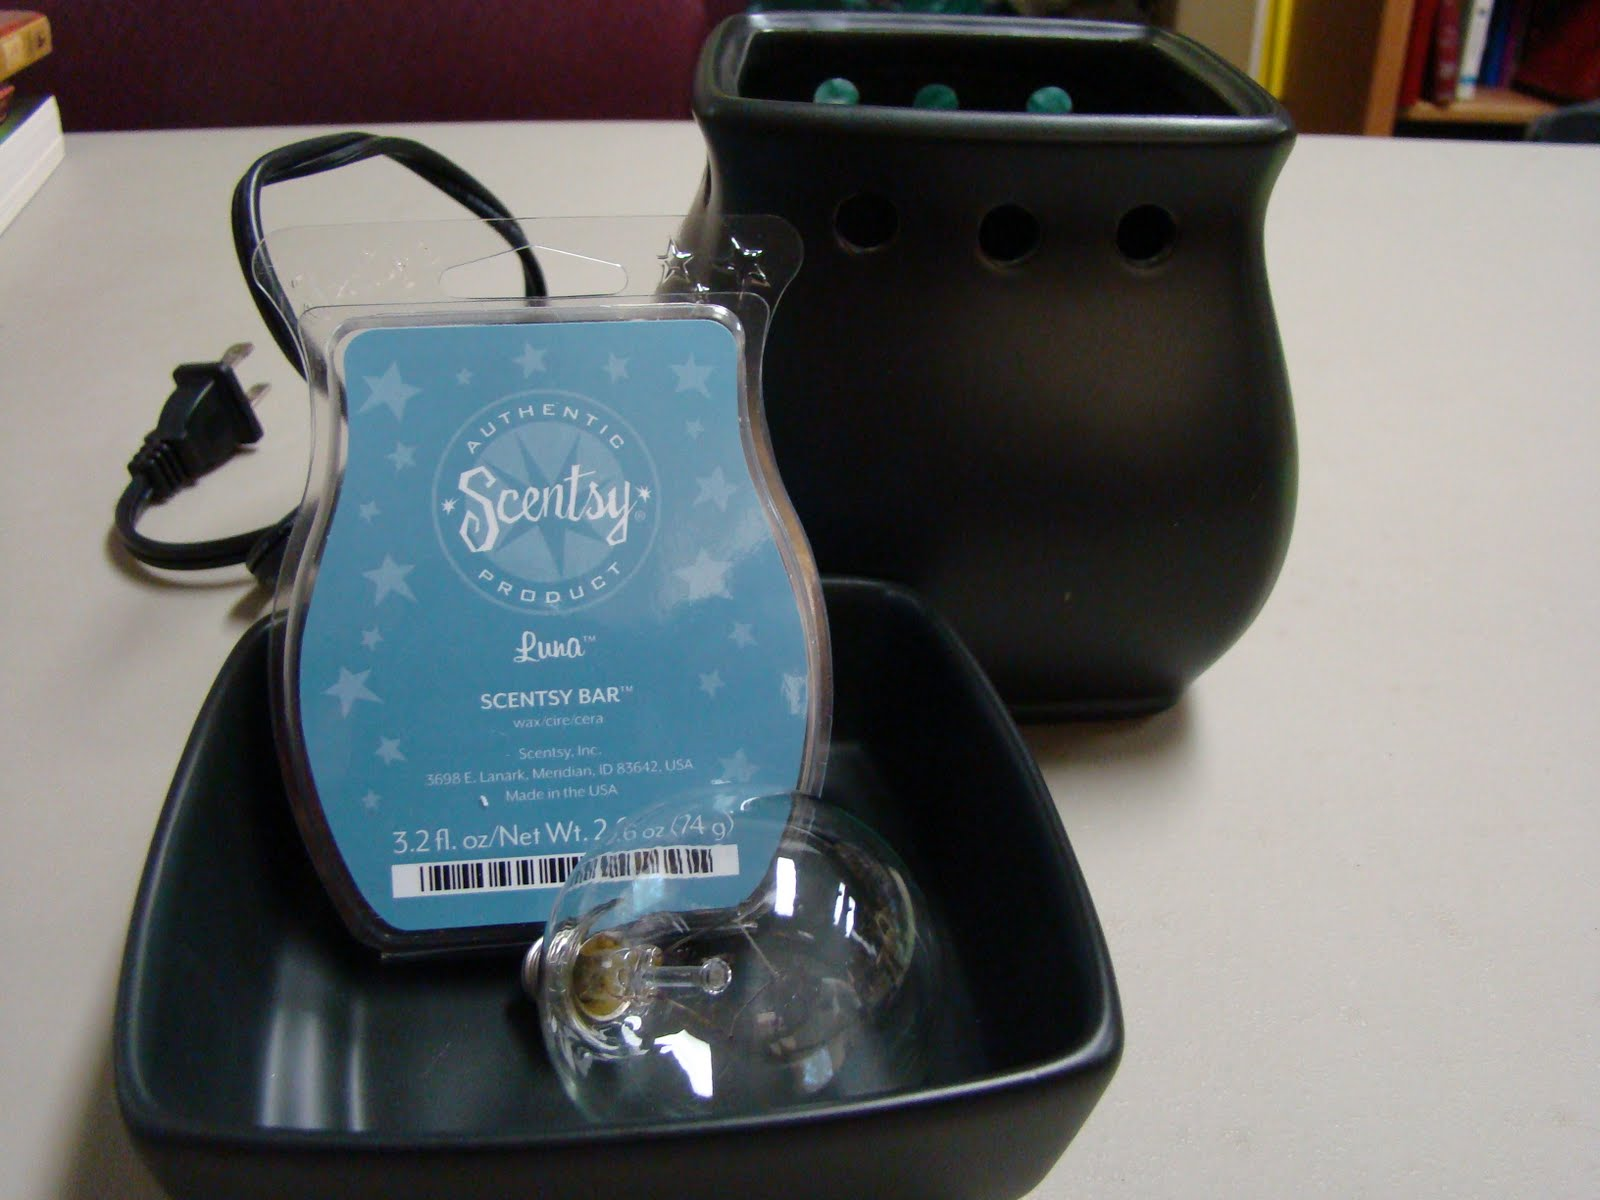 At The Fence Scentsy Warmer And Scentsy Bar Review